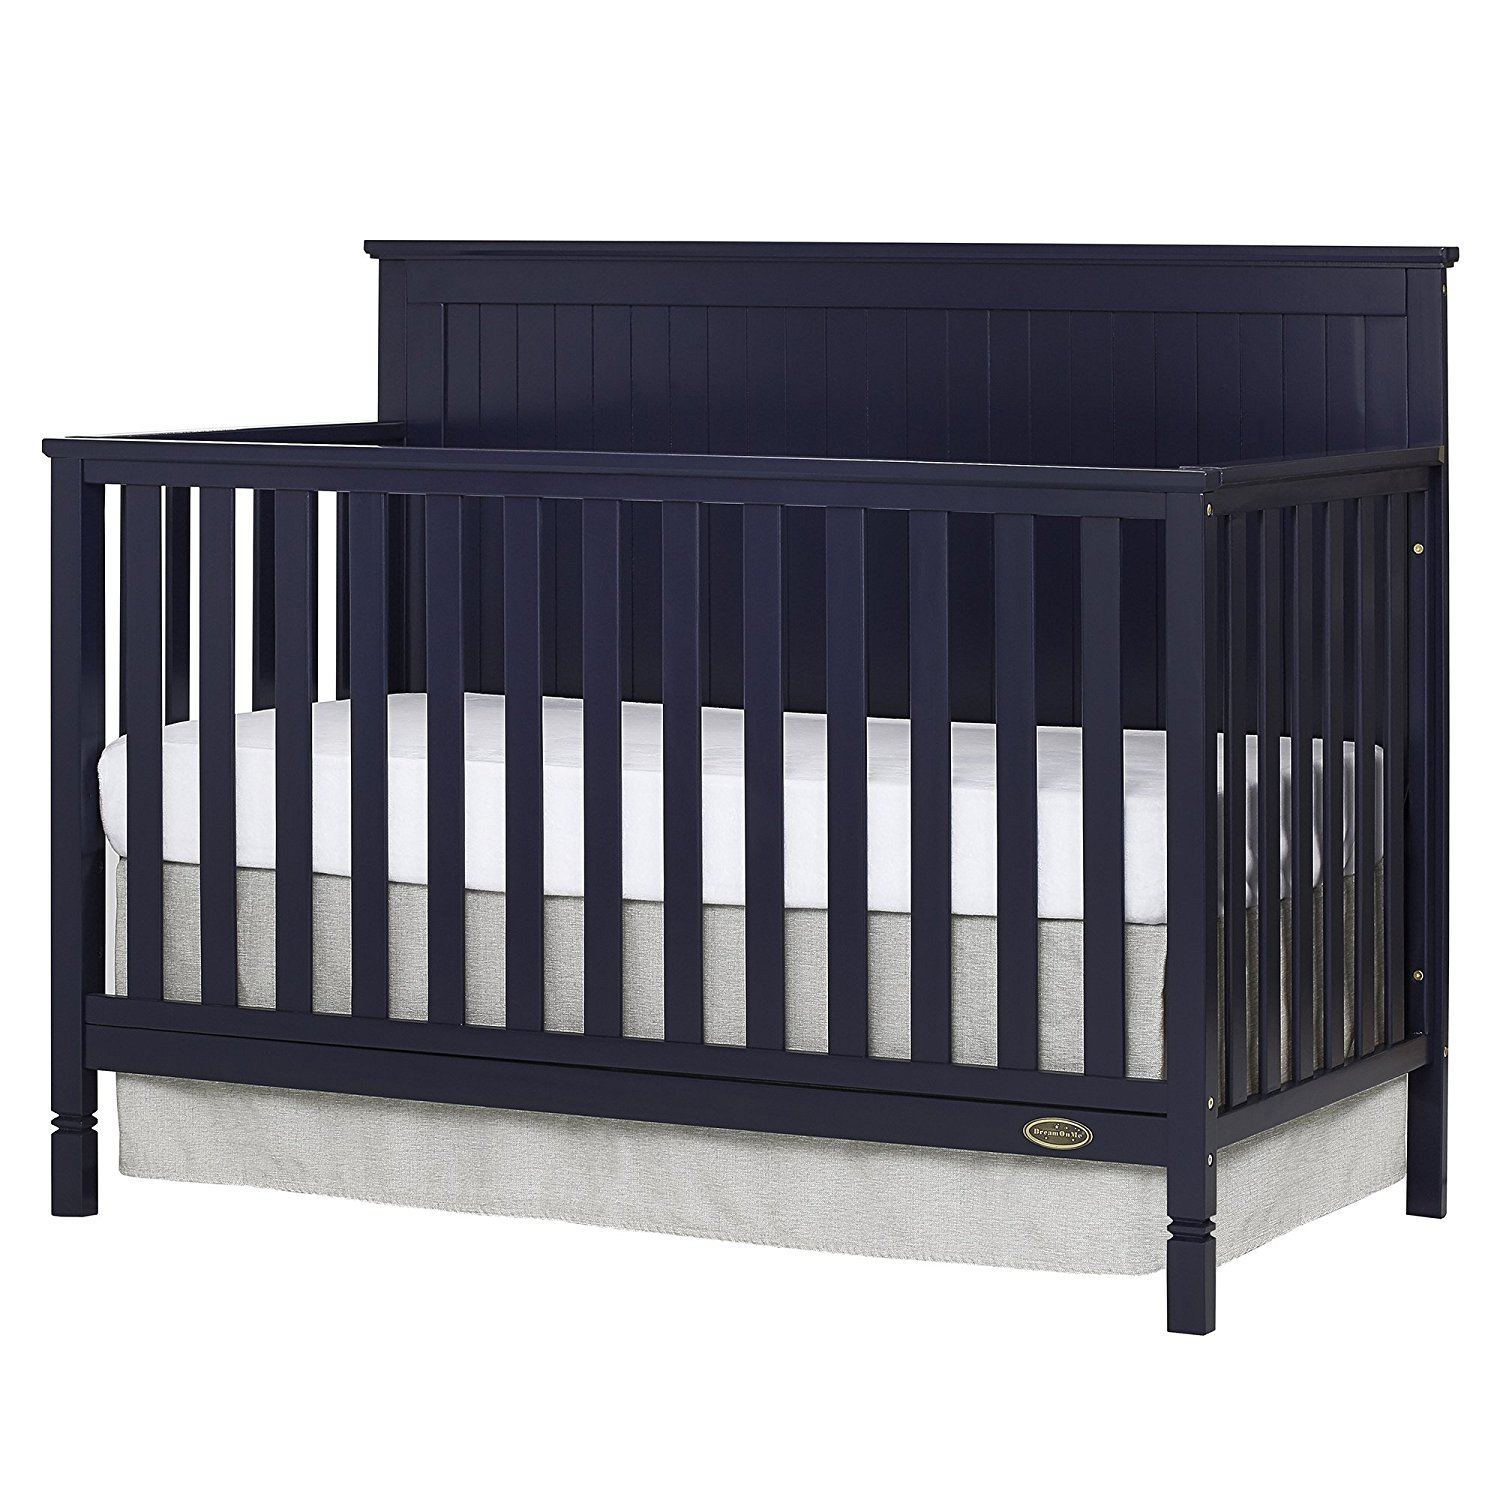 Fancy Baby Cribs | Restoration Hardware Cribs | Cheap Convertible Cribs